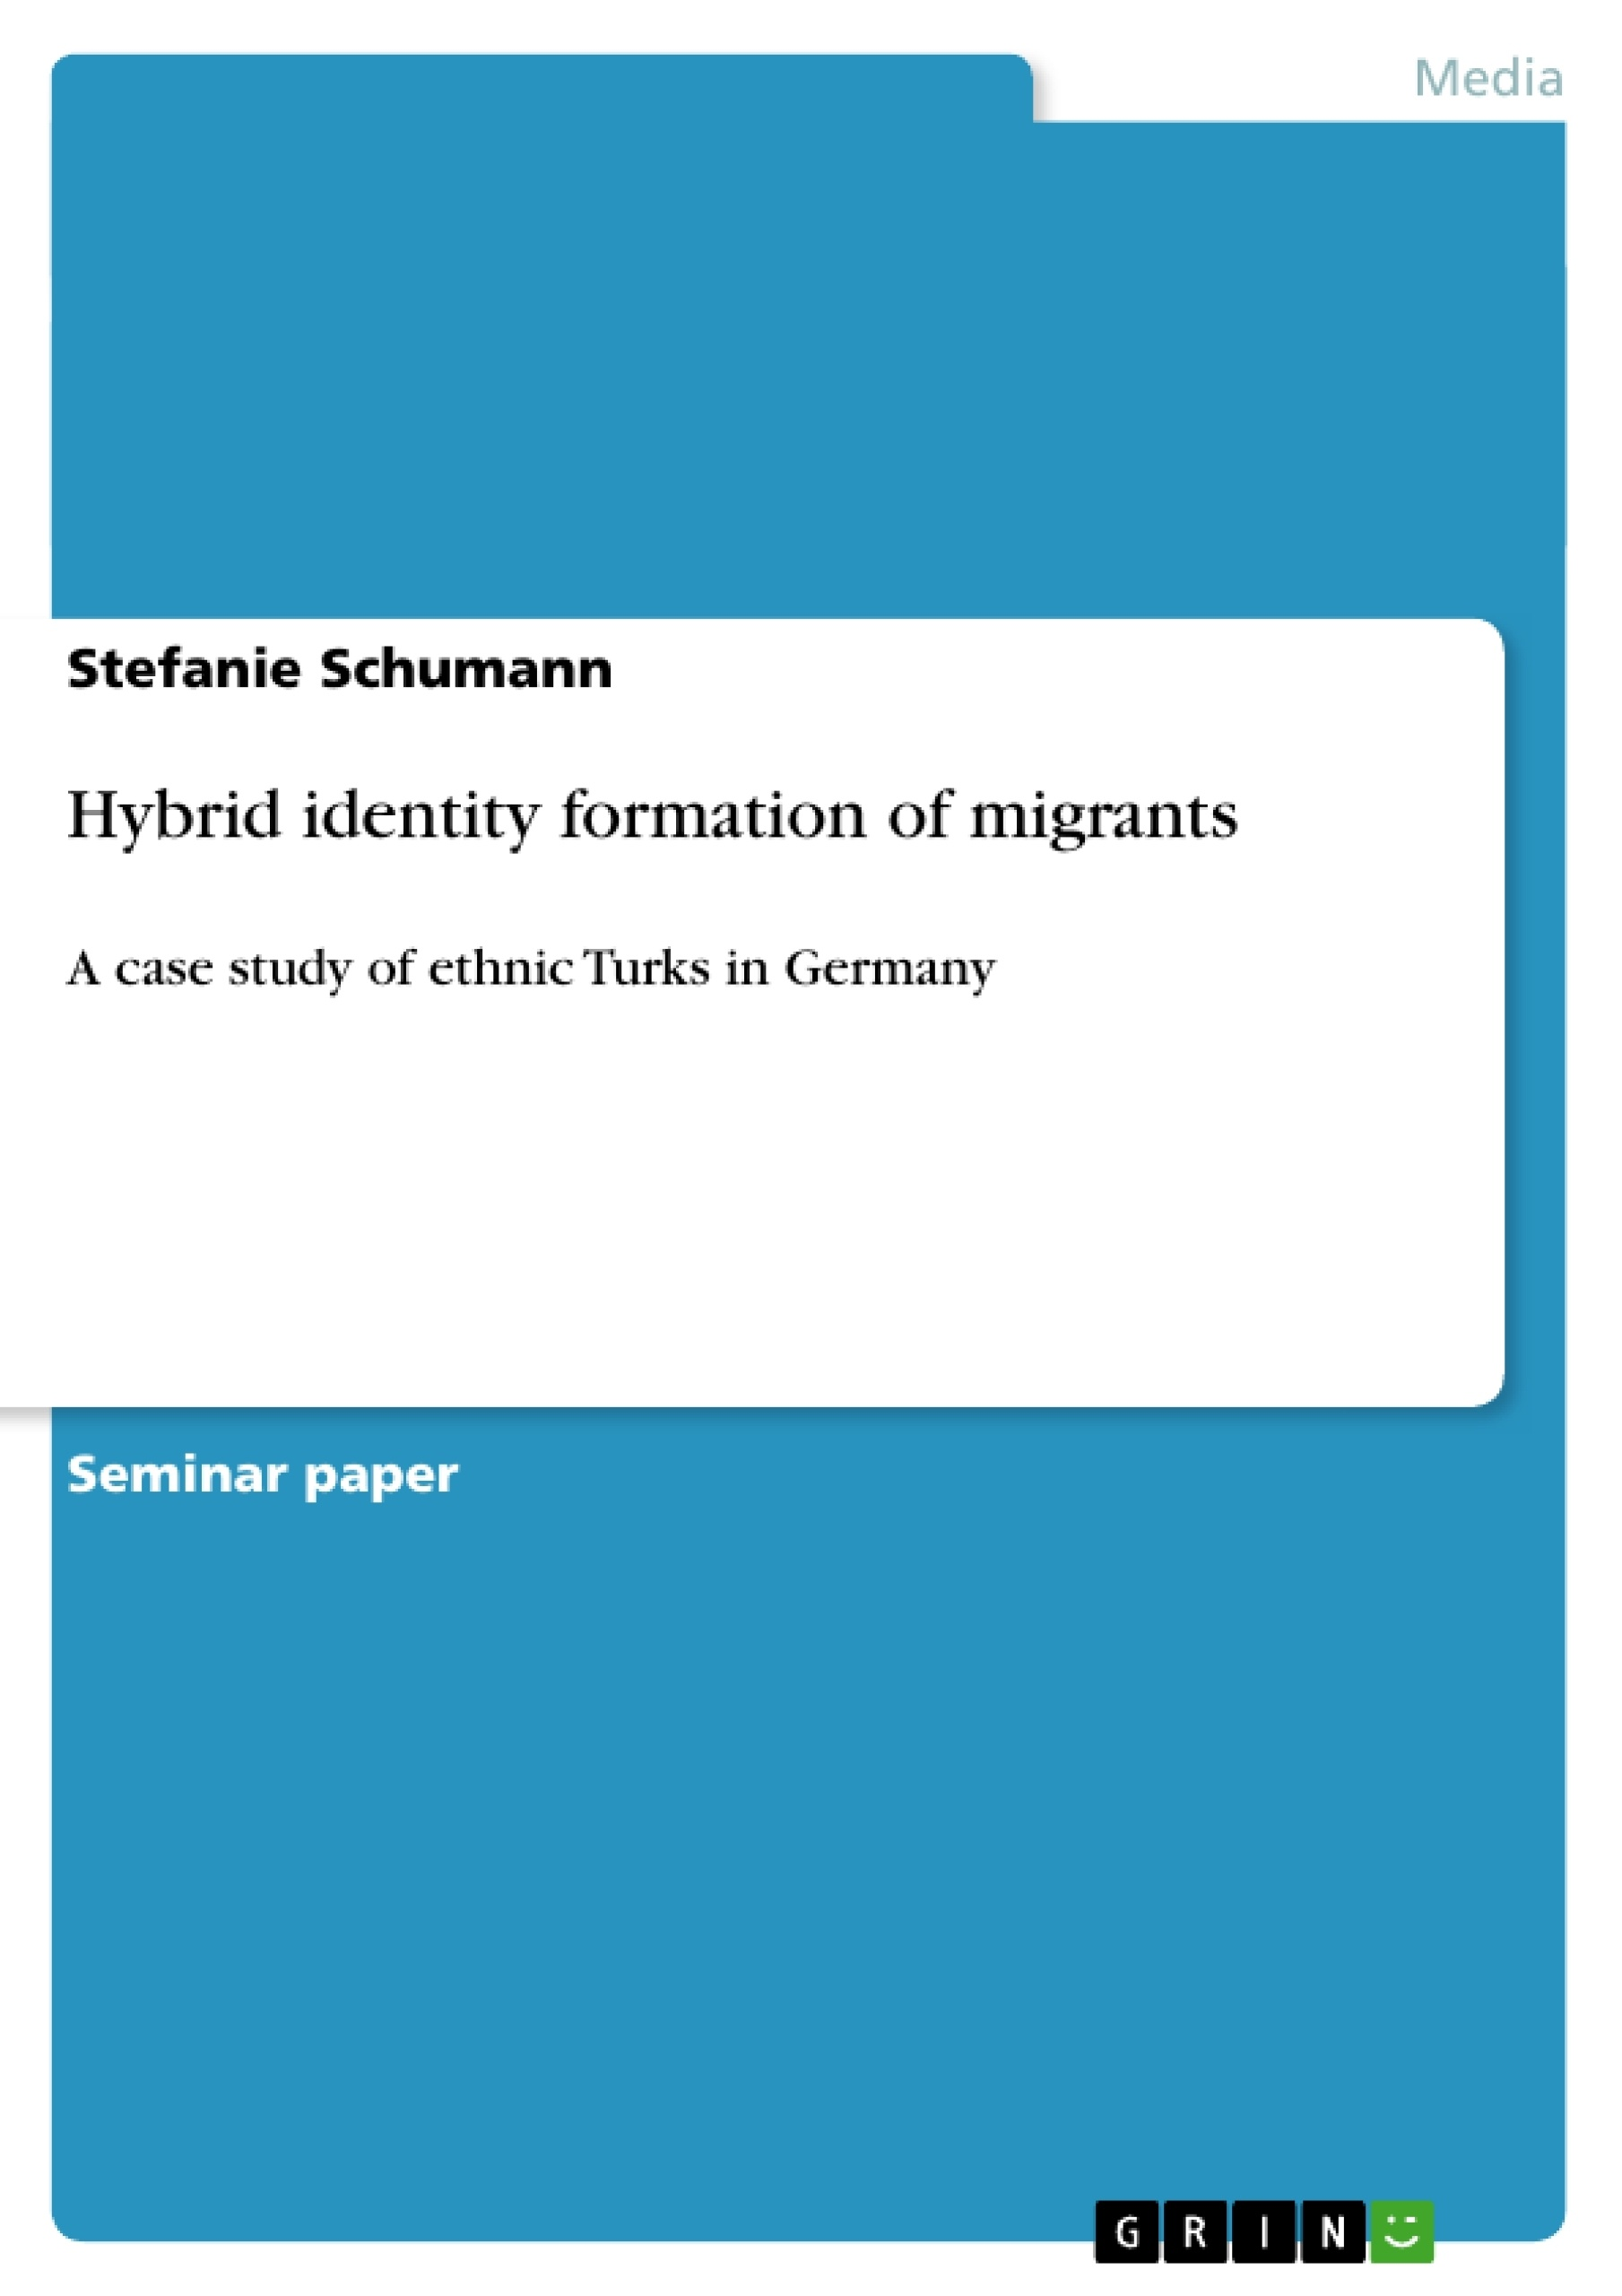 hybrid identity formation of migrants publish your master s  hybrid identity formation of migrants publish your master s thesis bachelor s thesis essay or term paper